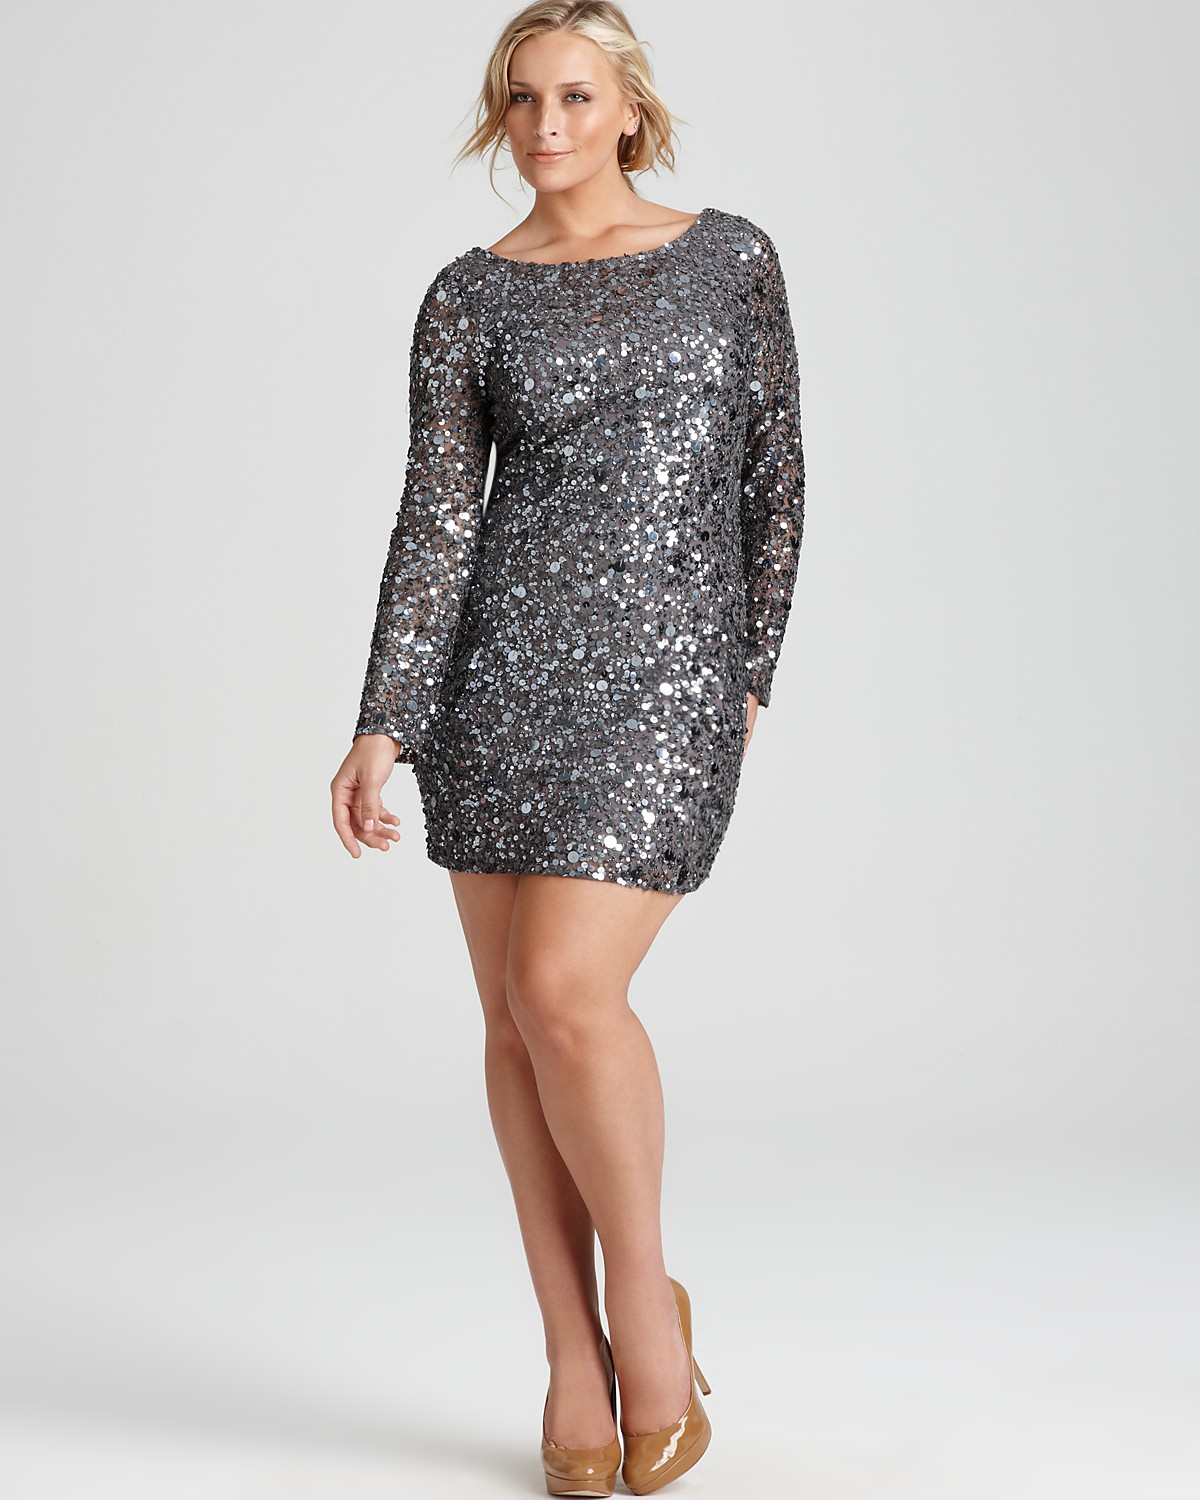 Where To Buy Sequin Dresses